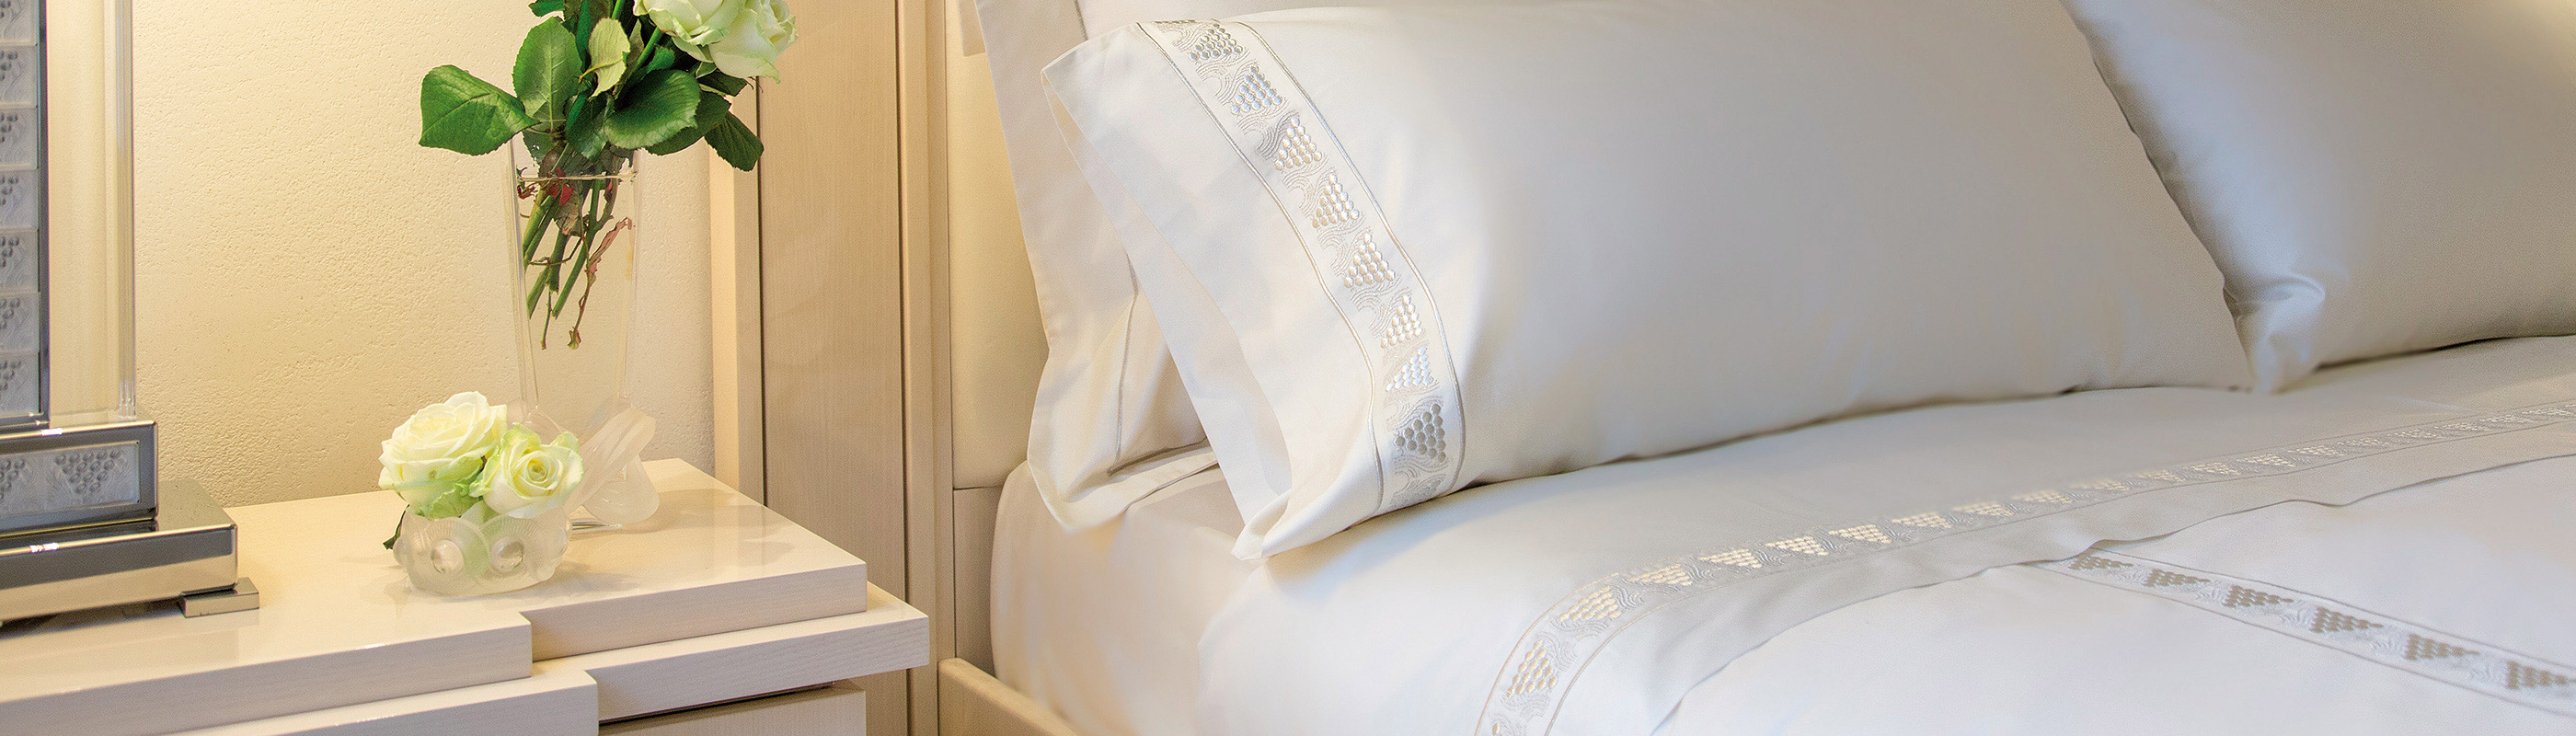 bed linens duvet covers sheets pillowcases cashmere throws